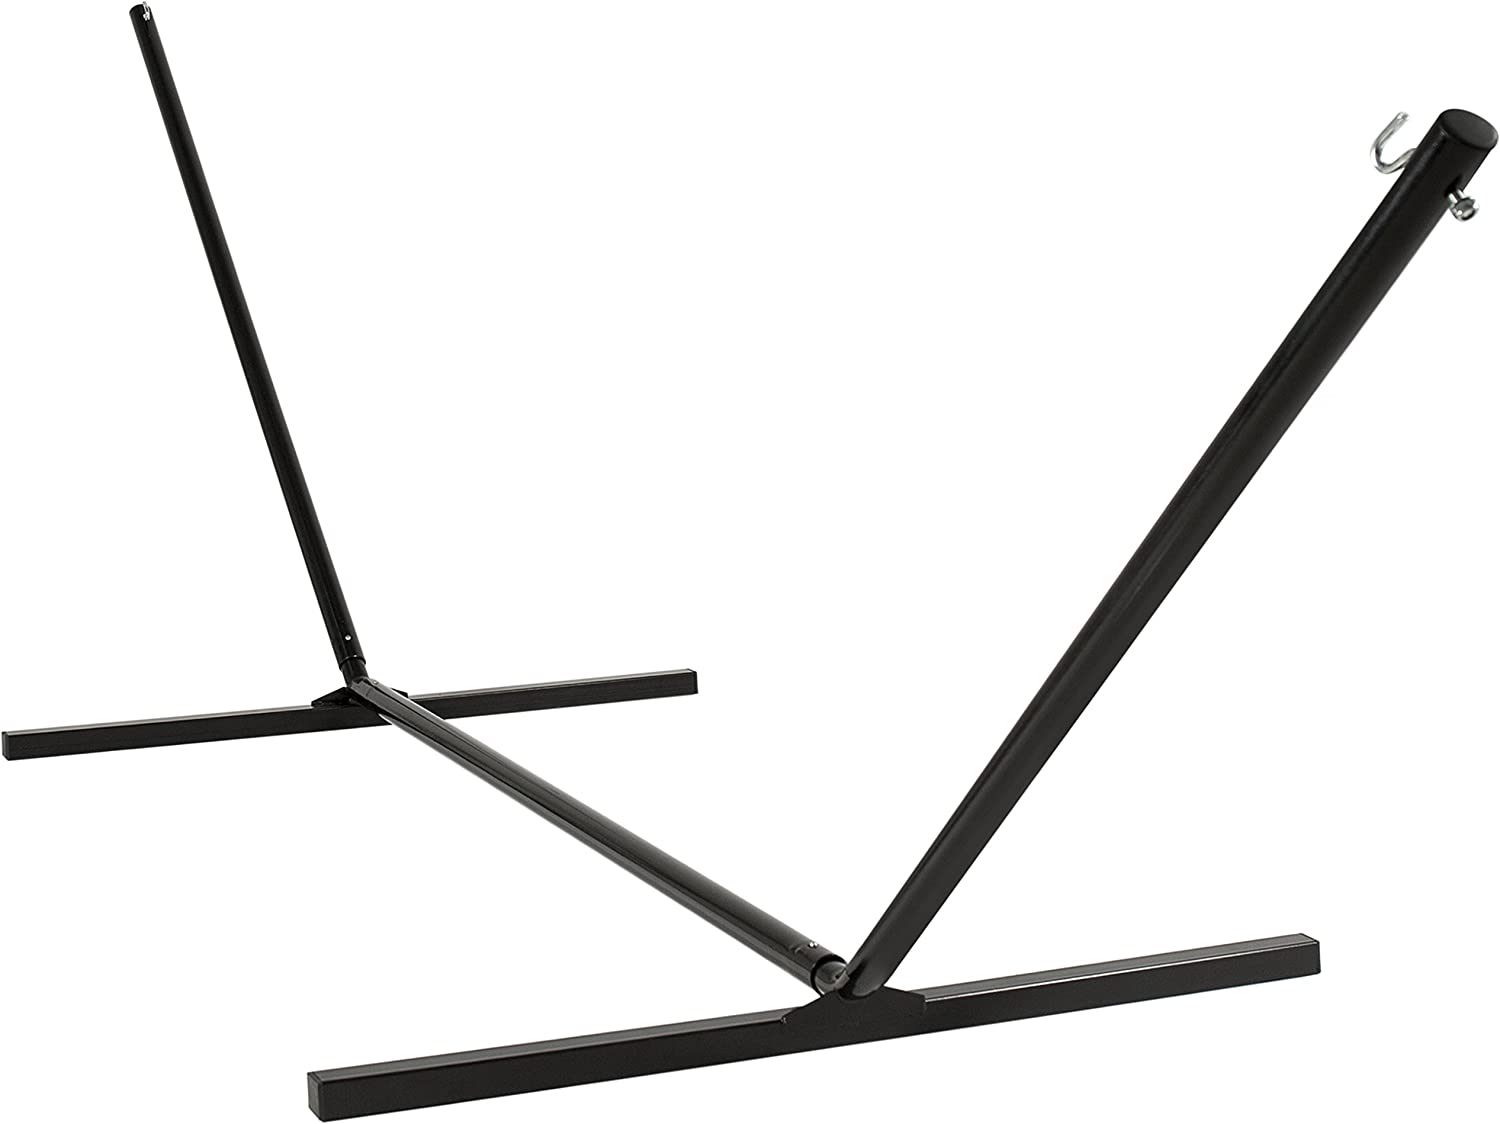 Best Choice Products 15ft Weather-Resistant Steel Beam Hammock Stand w/Adjustable Hanging Hooks and Powder-Coated Finish, Black